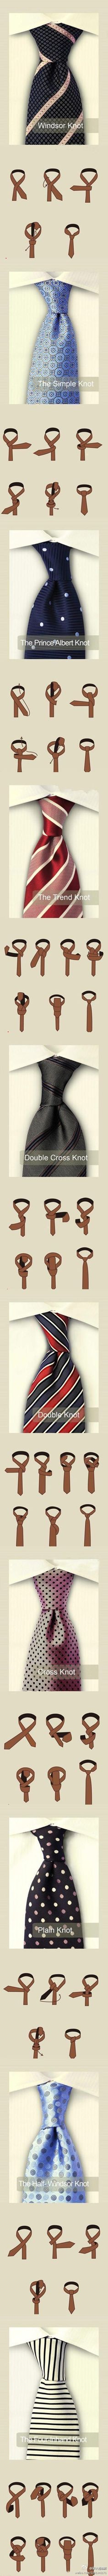 I'd be happy if I knew how to tie even one of these lol the knot, oneday, remember this, tying ties, tie a tie, son, neck ties, tying a tie, tie knots